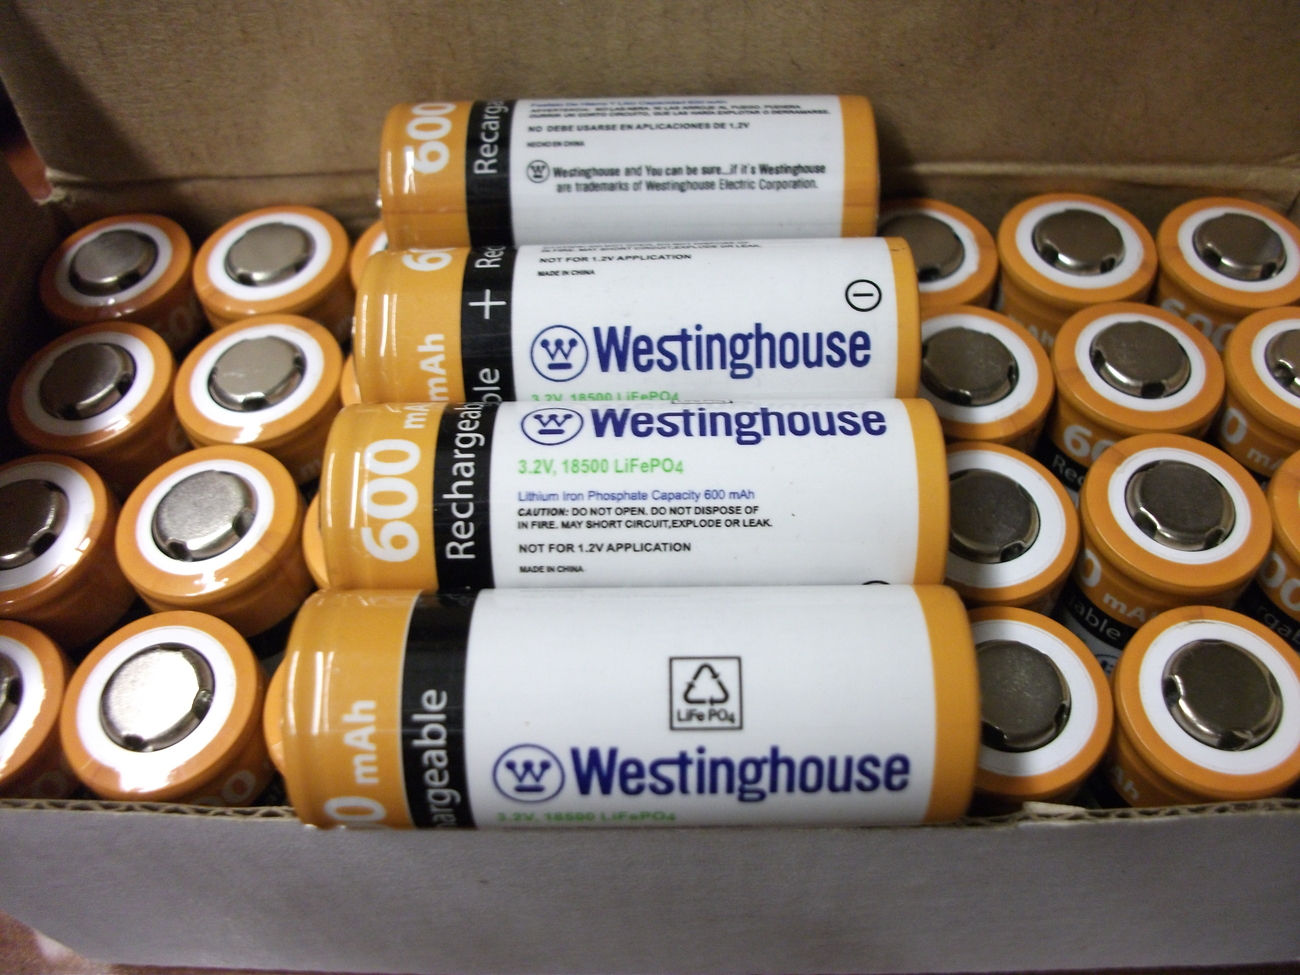 4 Westinghouse 600mah 3 2v 18500 Lifepo4 Lithium Rechargeable Battery Solar Other